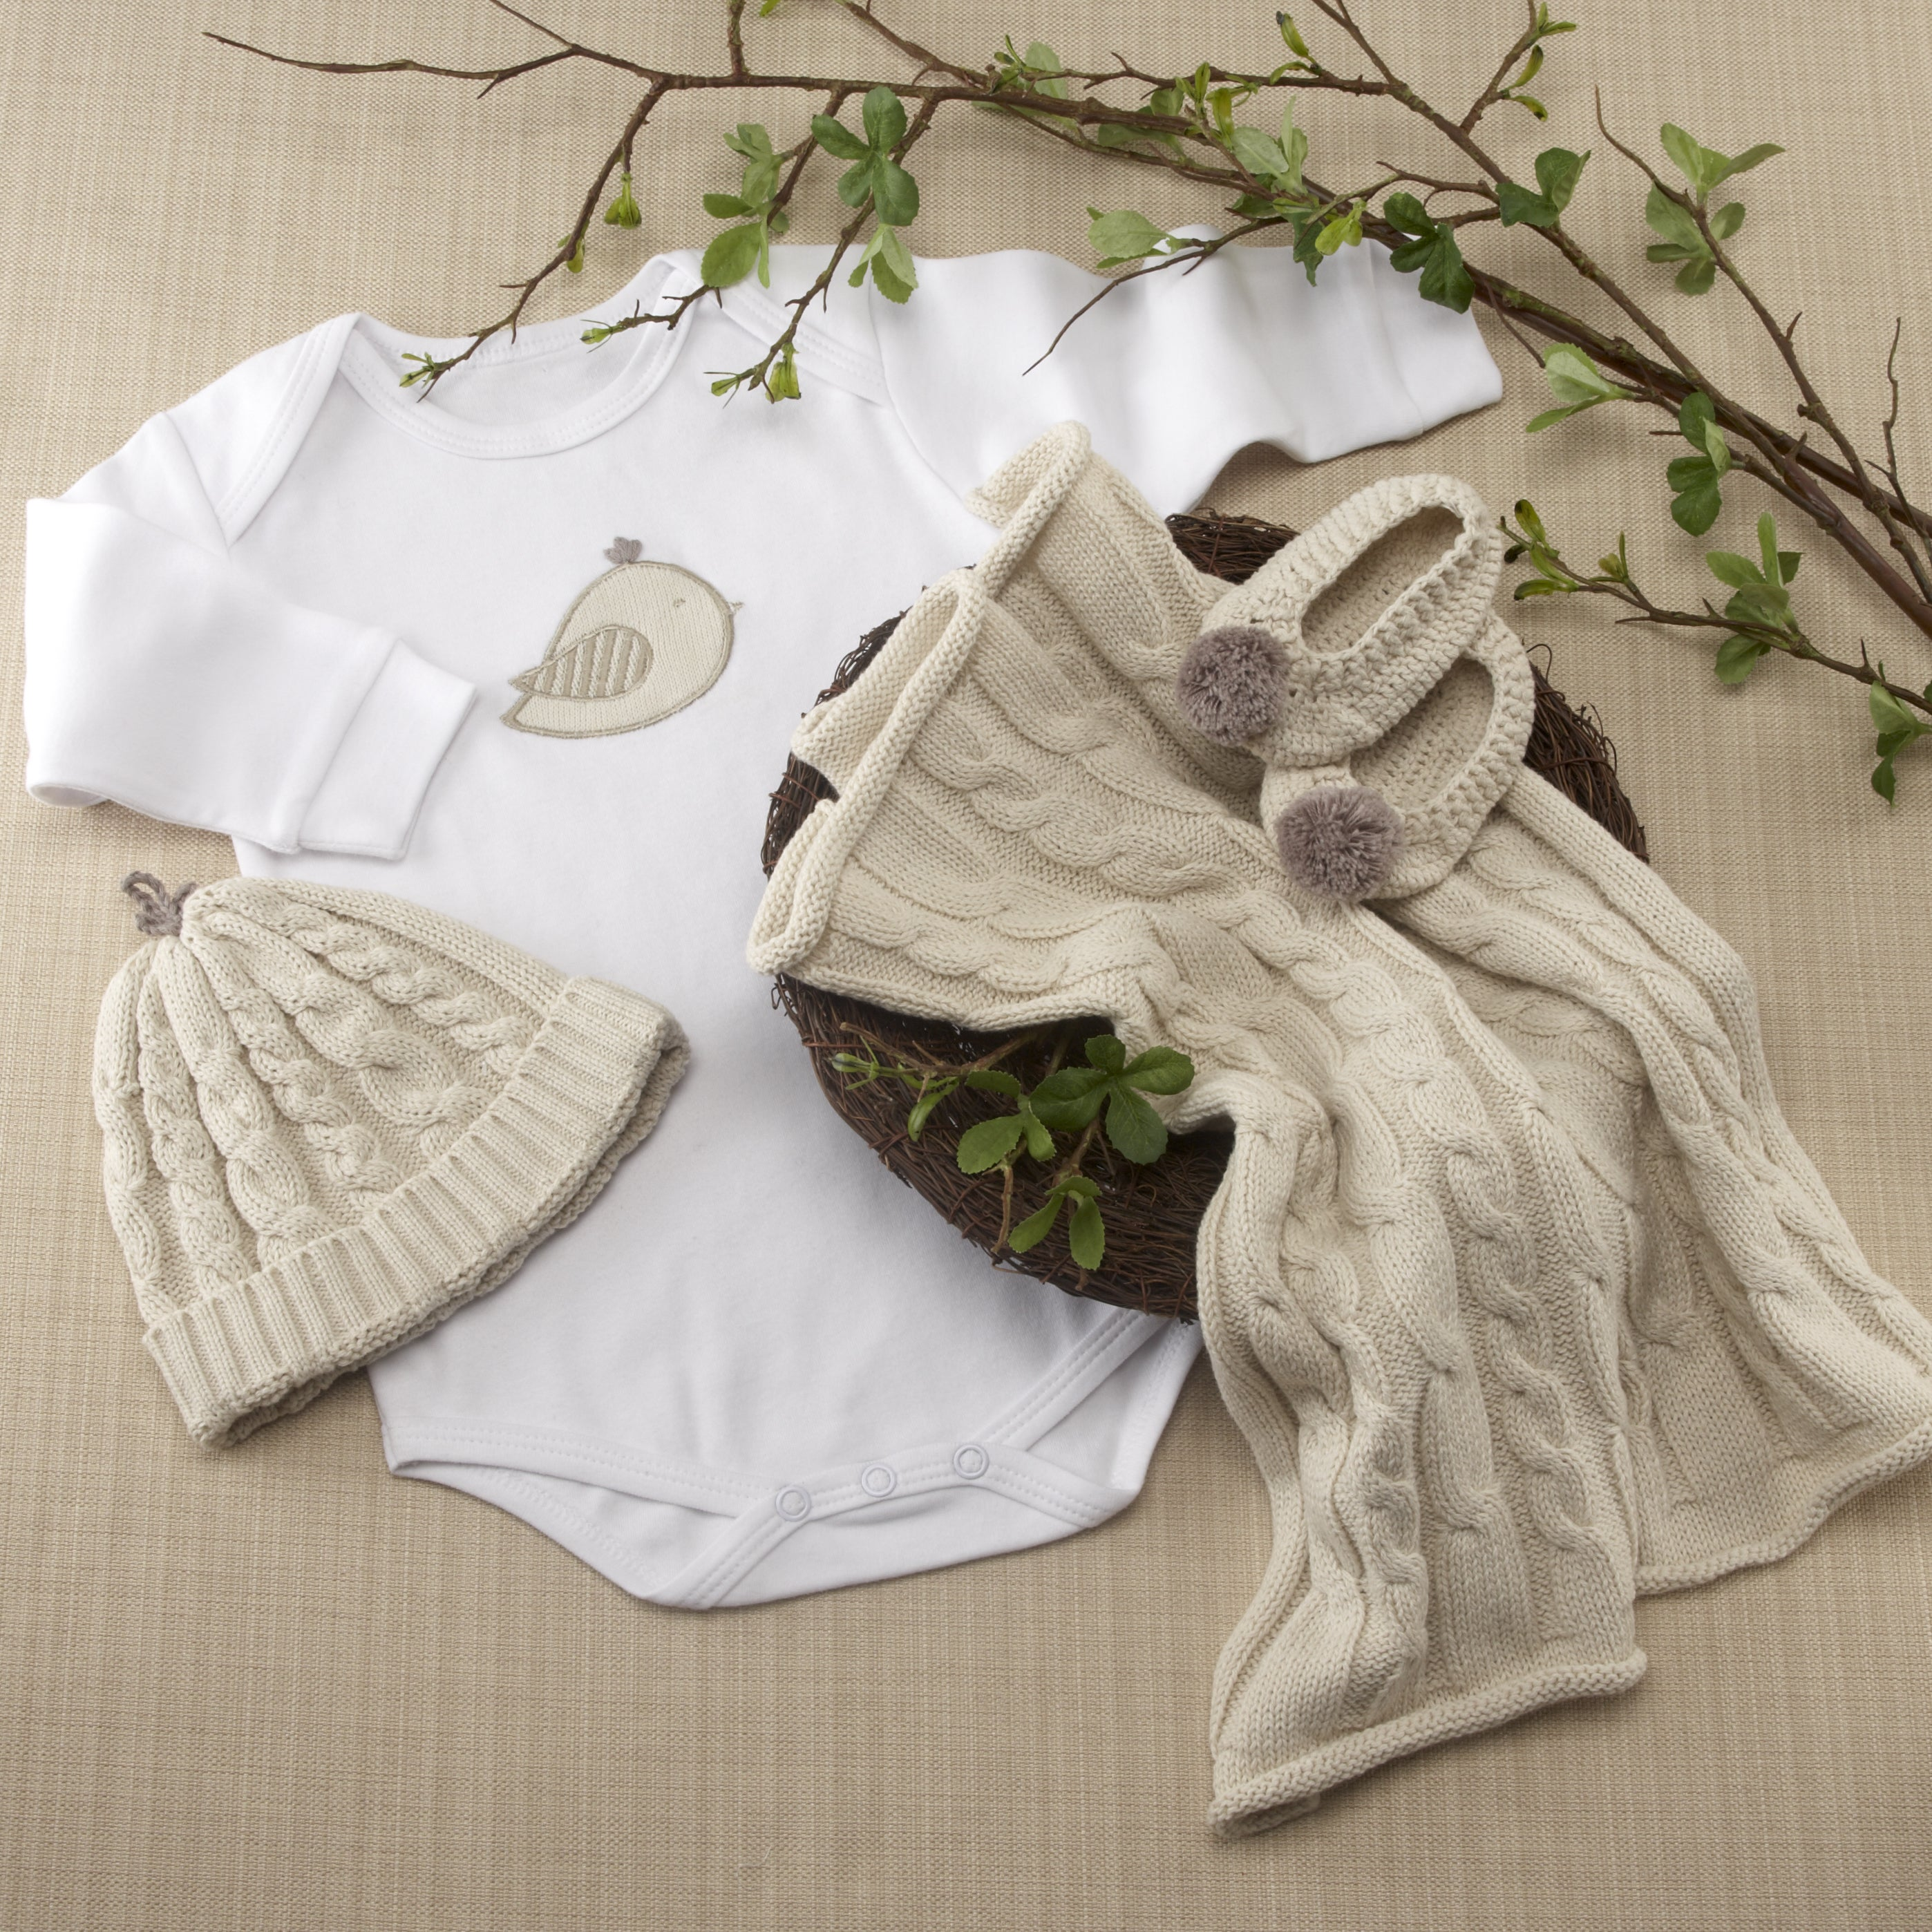 Baby Aspen 'Feathering the Nest' 4-piece Layette Gift Set